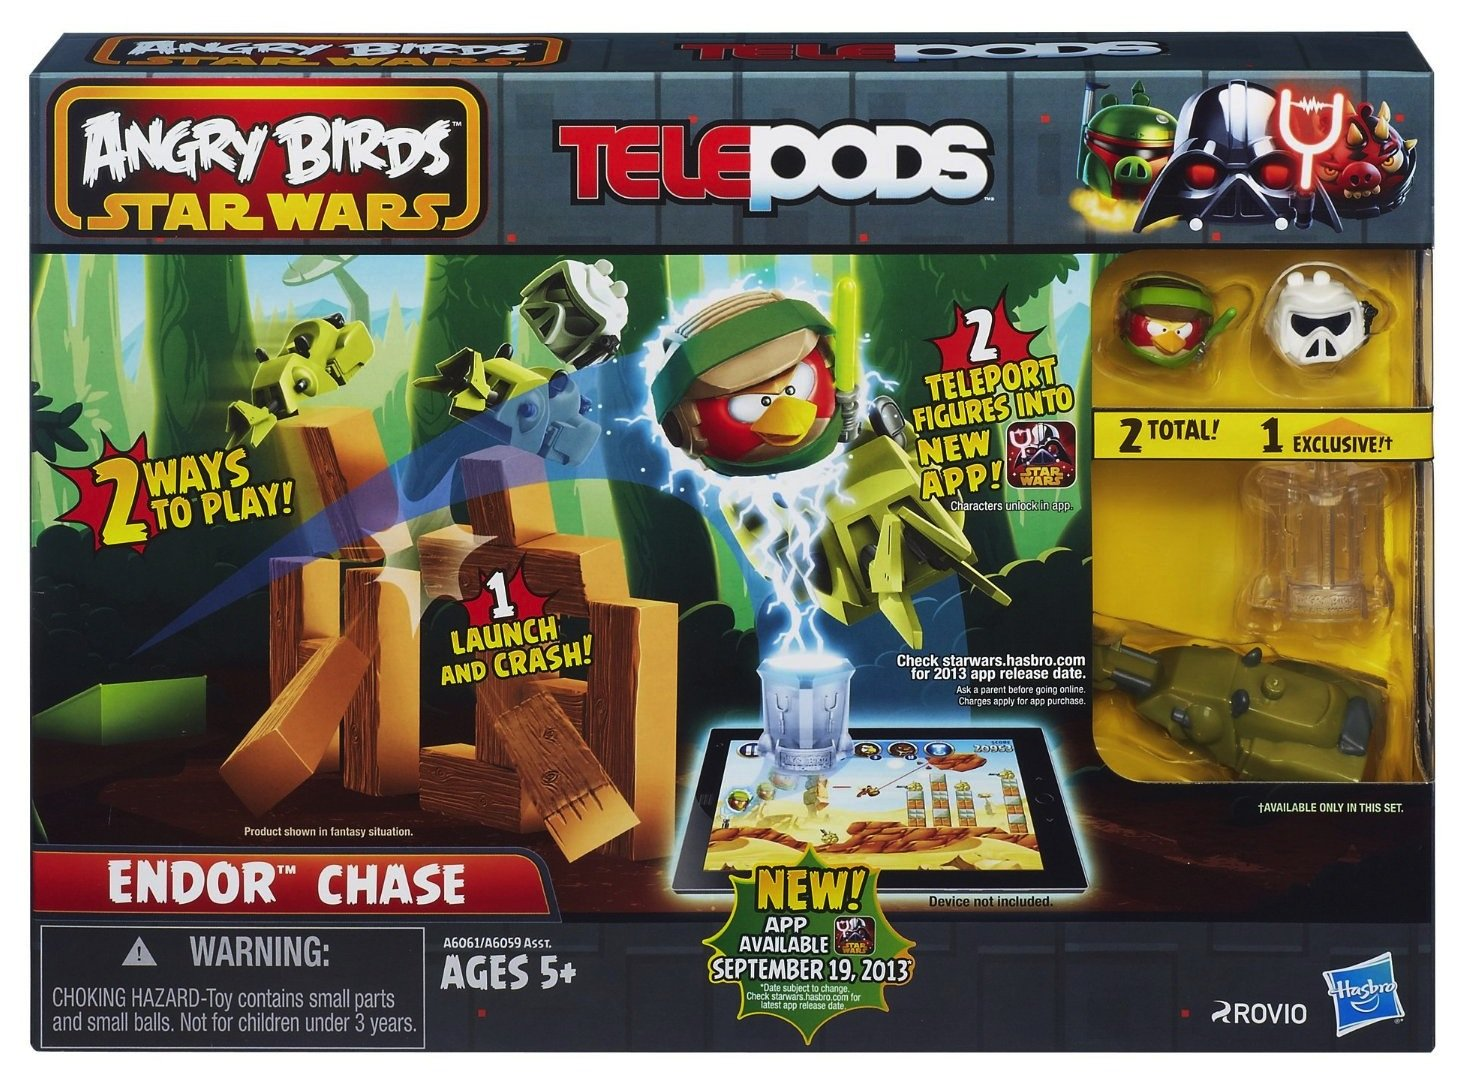 Angry Birds Star Wars Toys : Angry birds star wars ii adds physical toys but you won t have